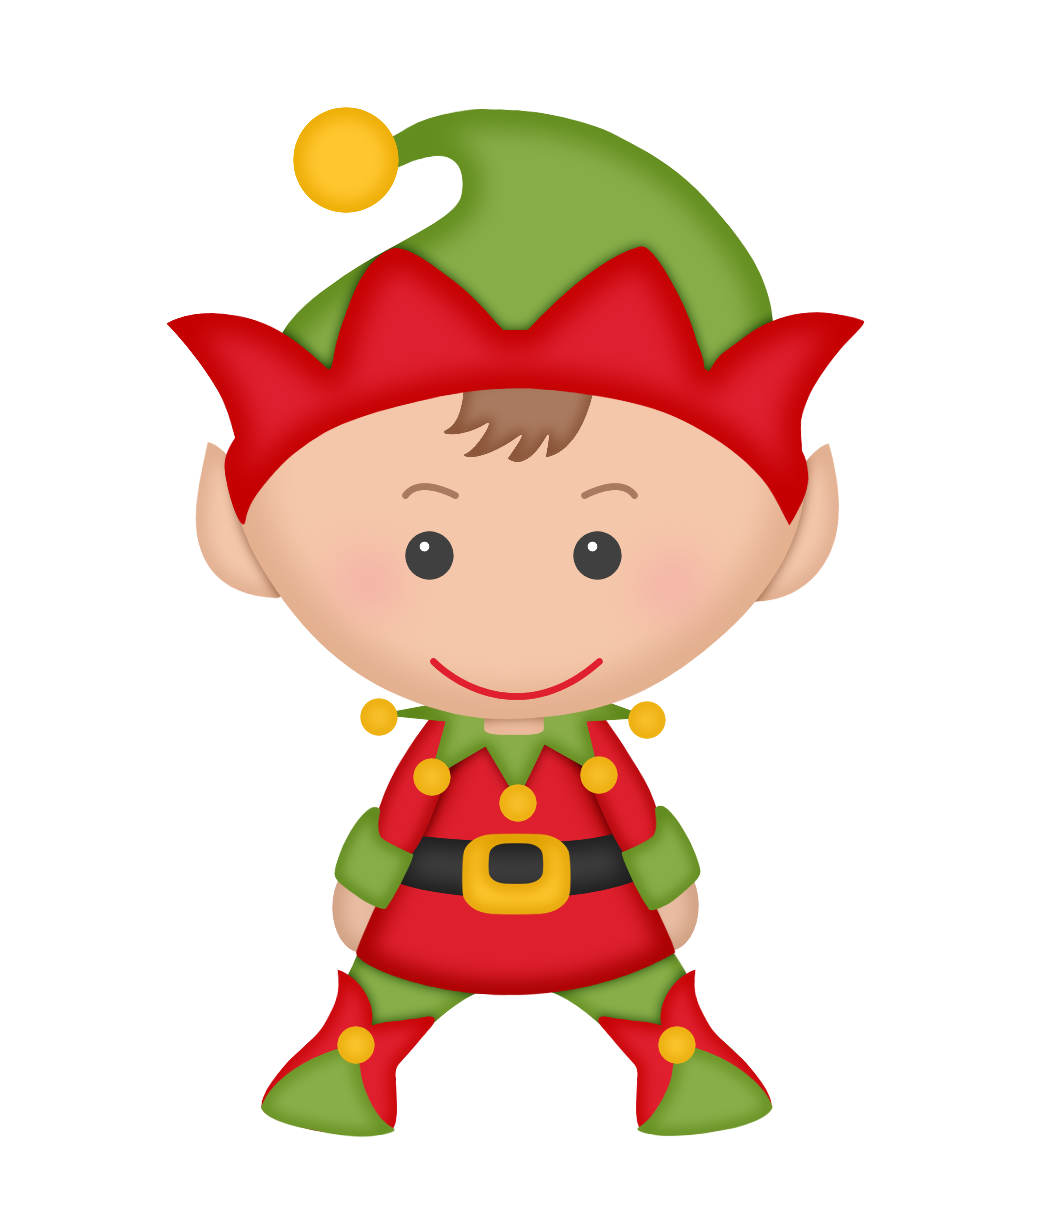 Elf clipart adorable. Cartoon christmas santa